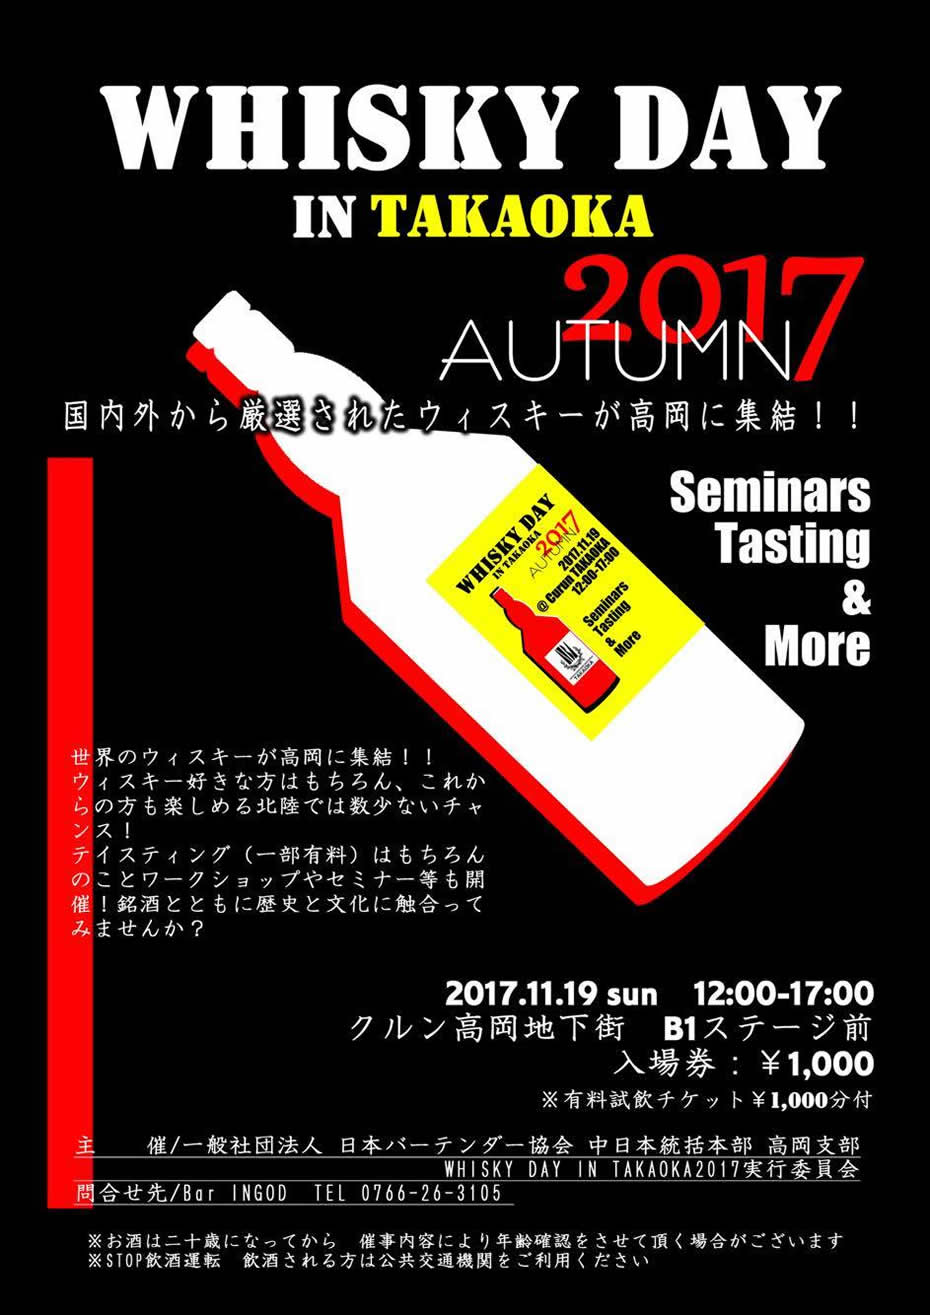 Whisky Day in TAKAOKA 2017 AUTUMN